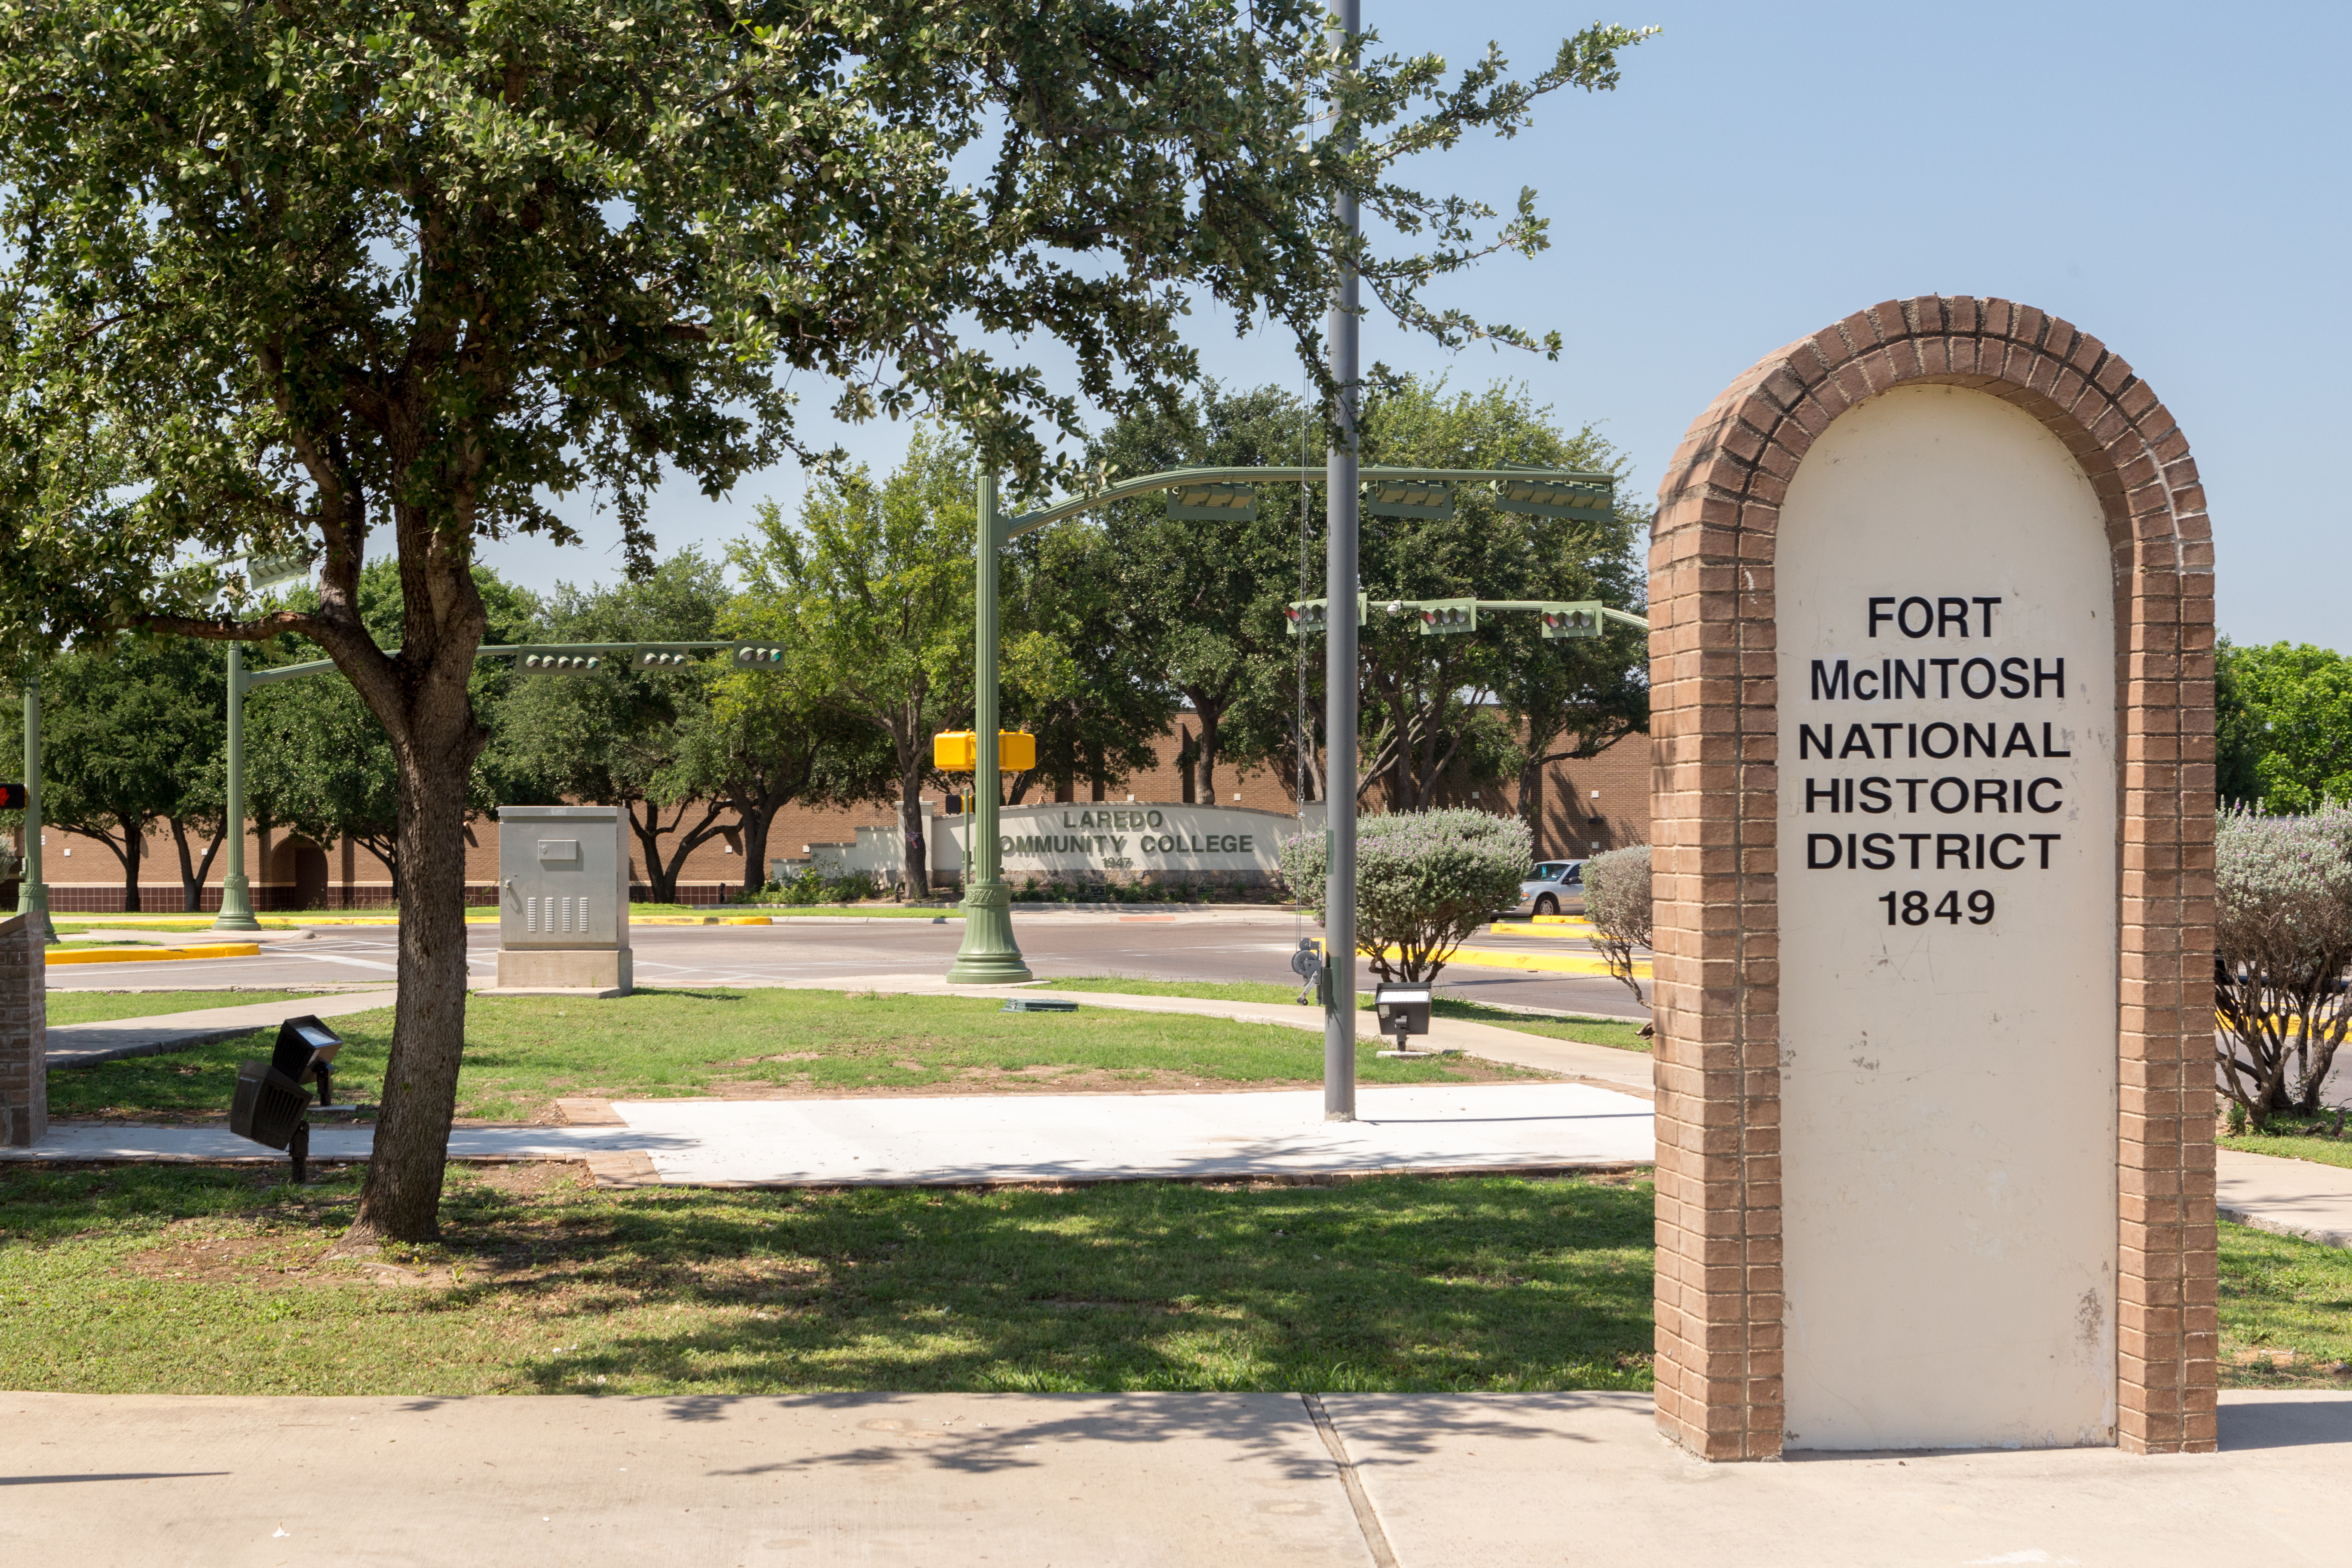 Fort McIntosh is remembered by this marker stone in Laredo. The fort existed from 1849 to 1946 and was once home to the famous Buffalo Soldiers and was used during World War I for training. The local community college now resides in the location the fort once occupied.